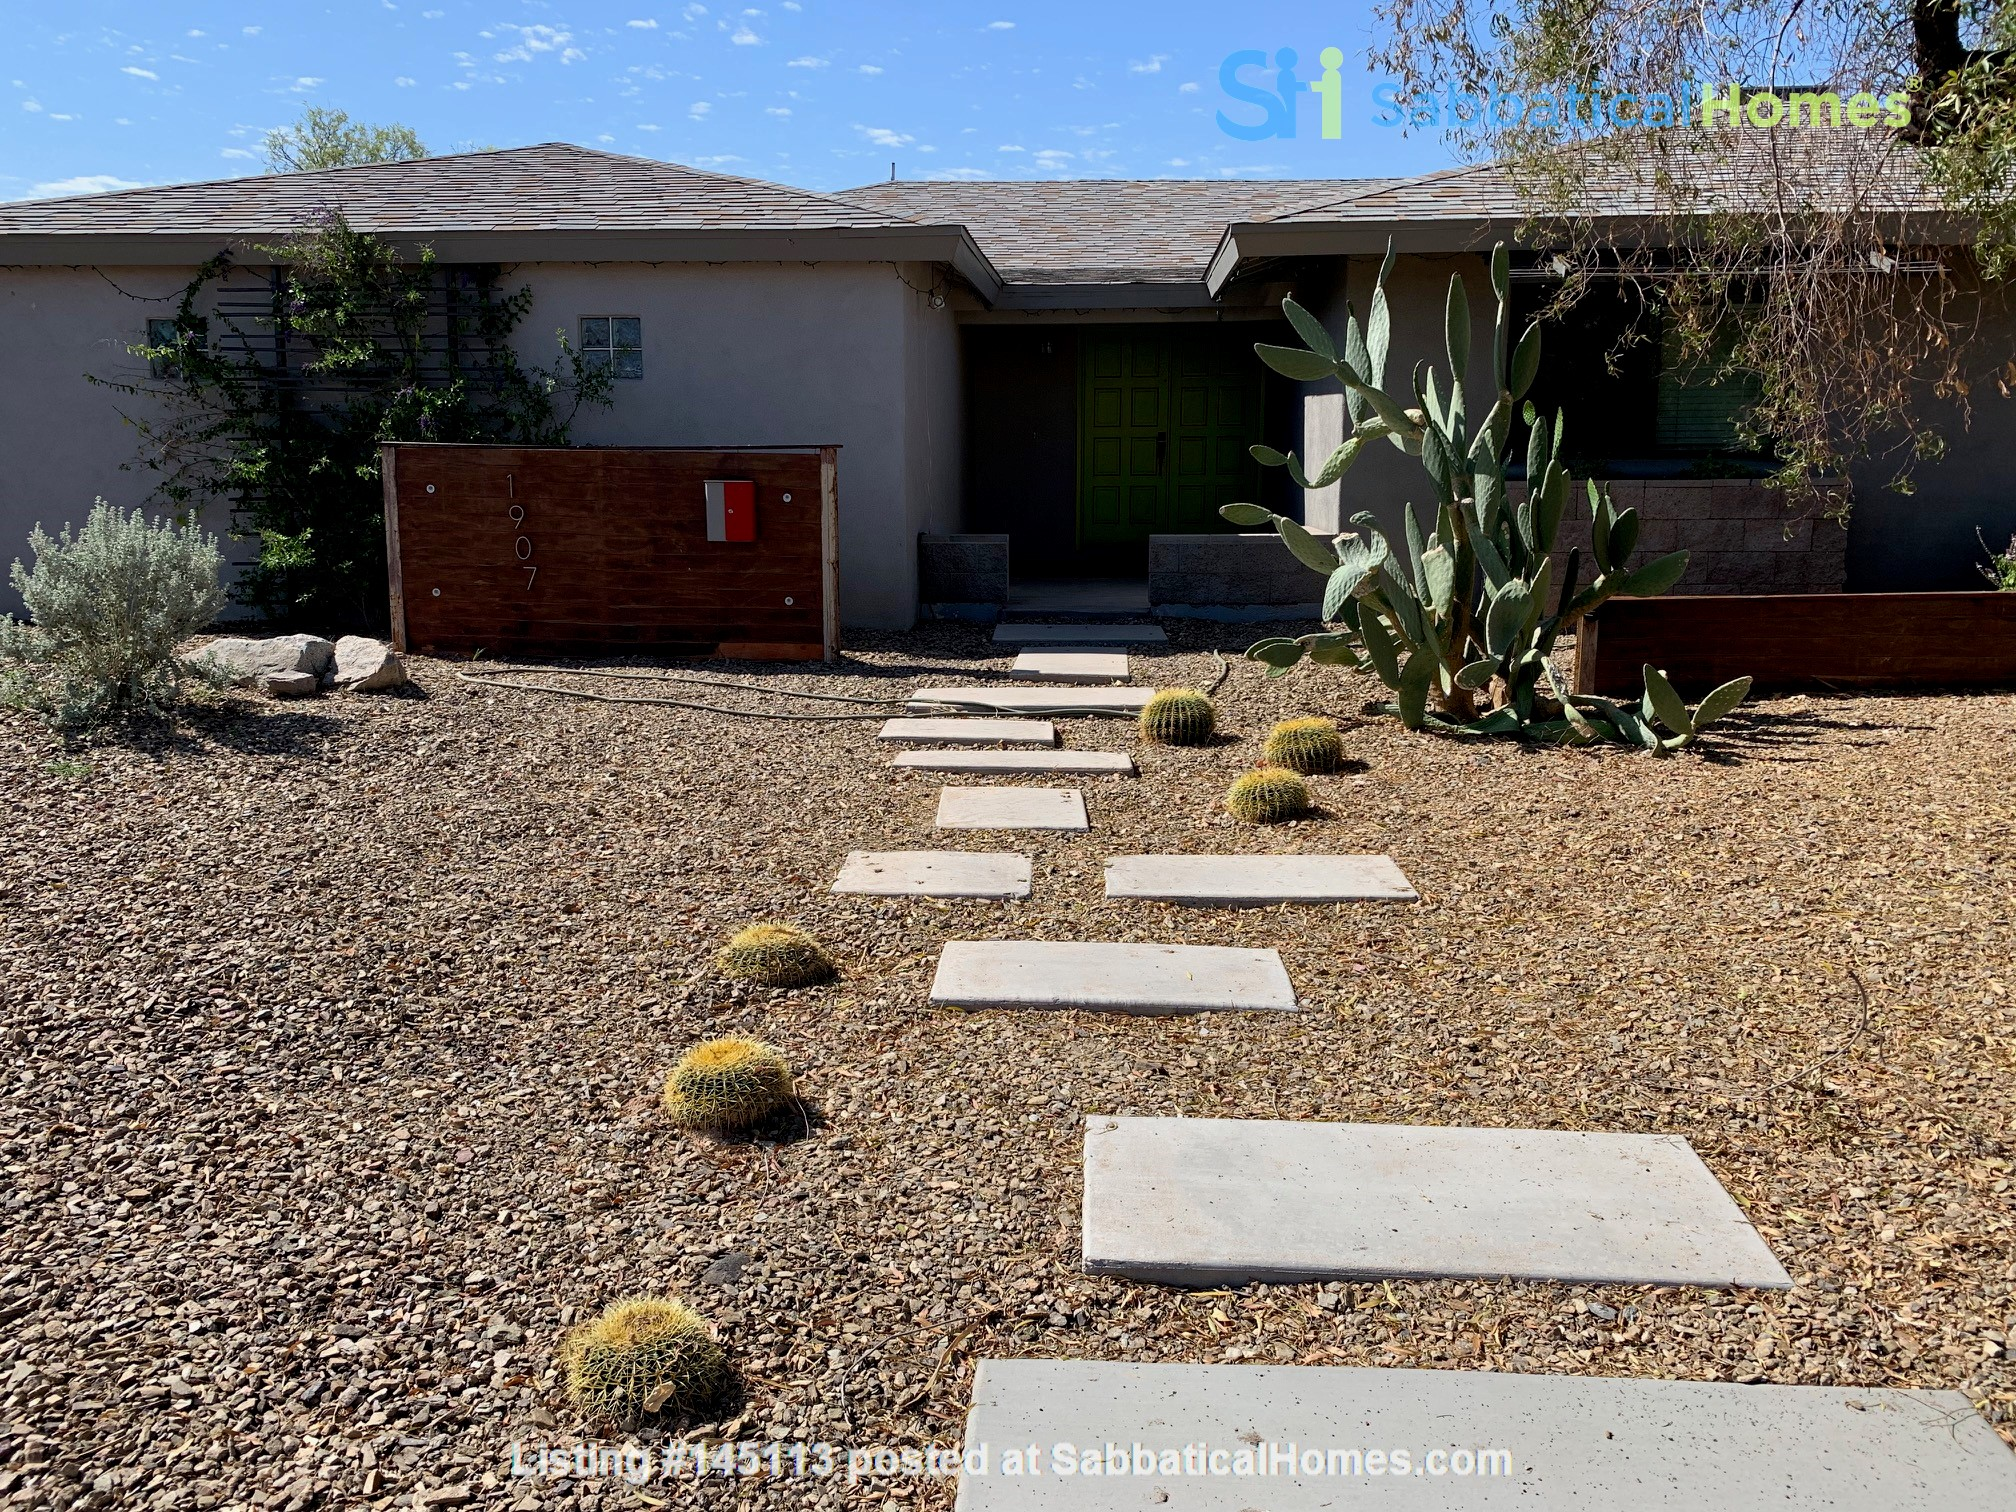 Modern family home 3 miles from ASU, 6 miles from Intel campus Home Rental in Tempe, Arizona, United States 9